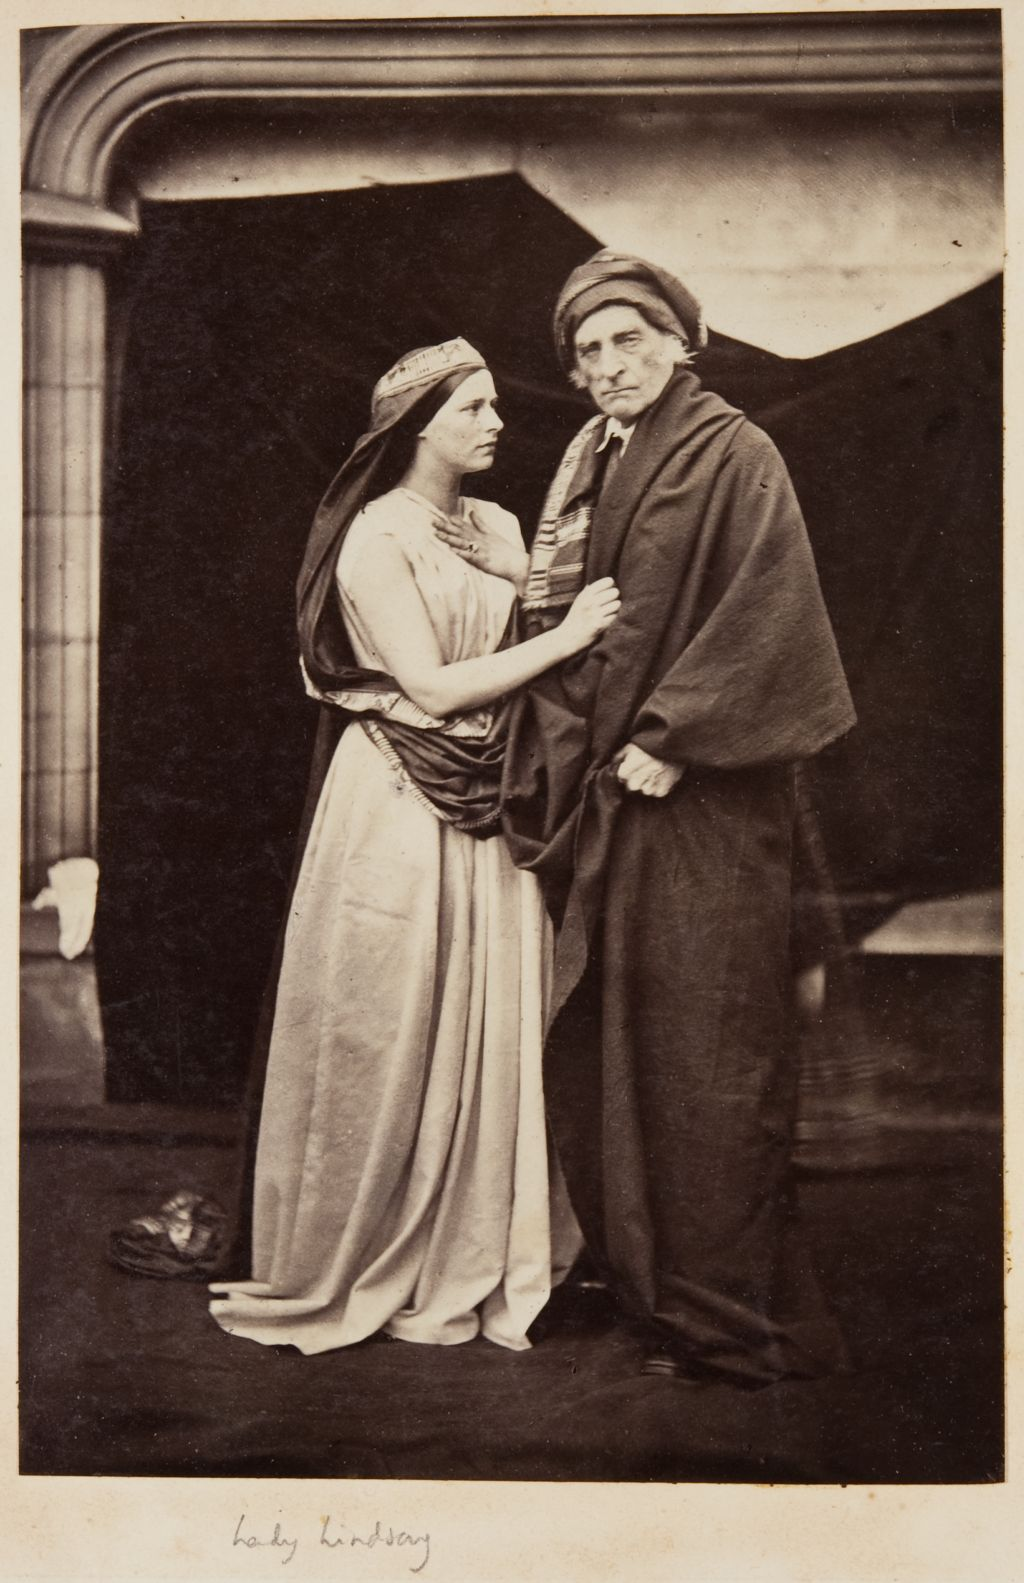 Lady Lindsay and unknown man.